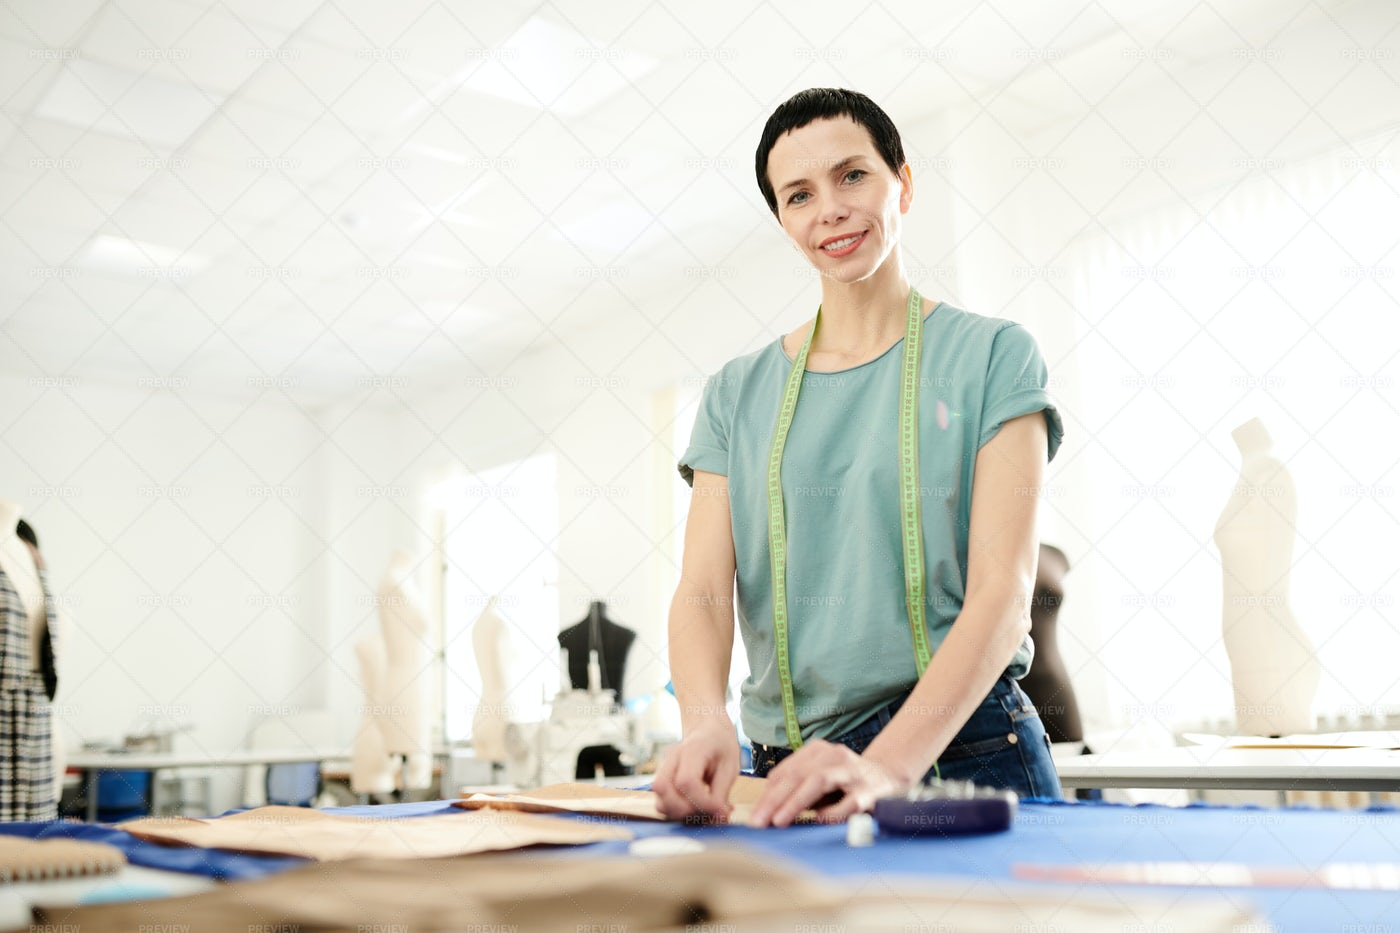 Working In Tailoring Shop: Stock Photos